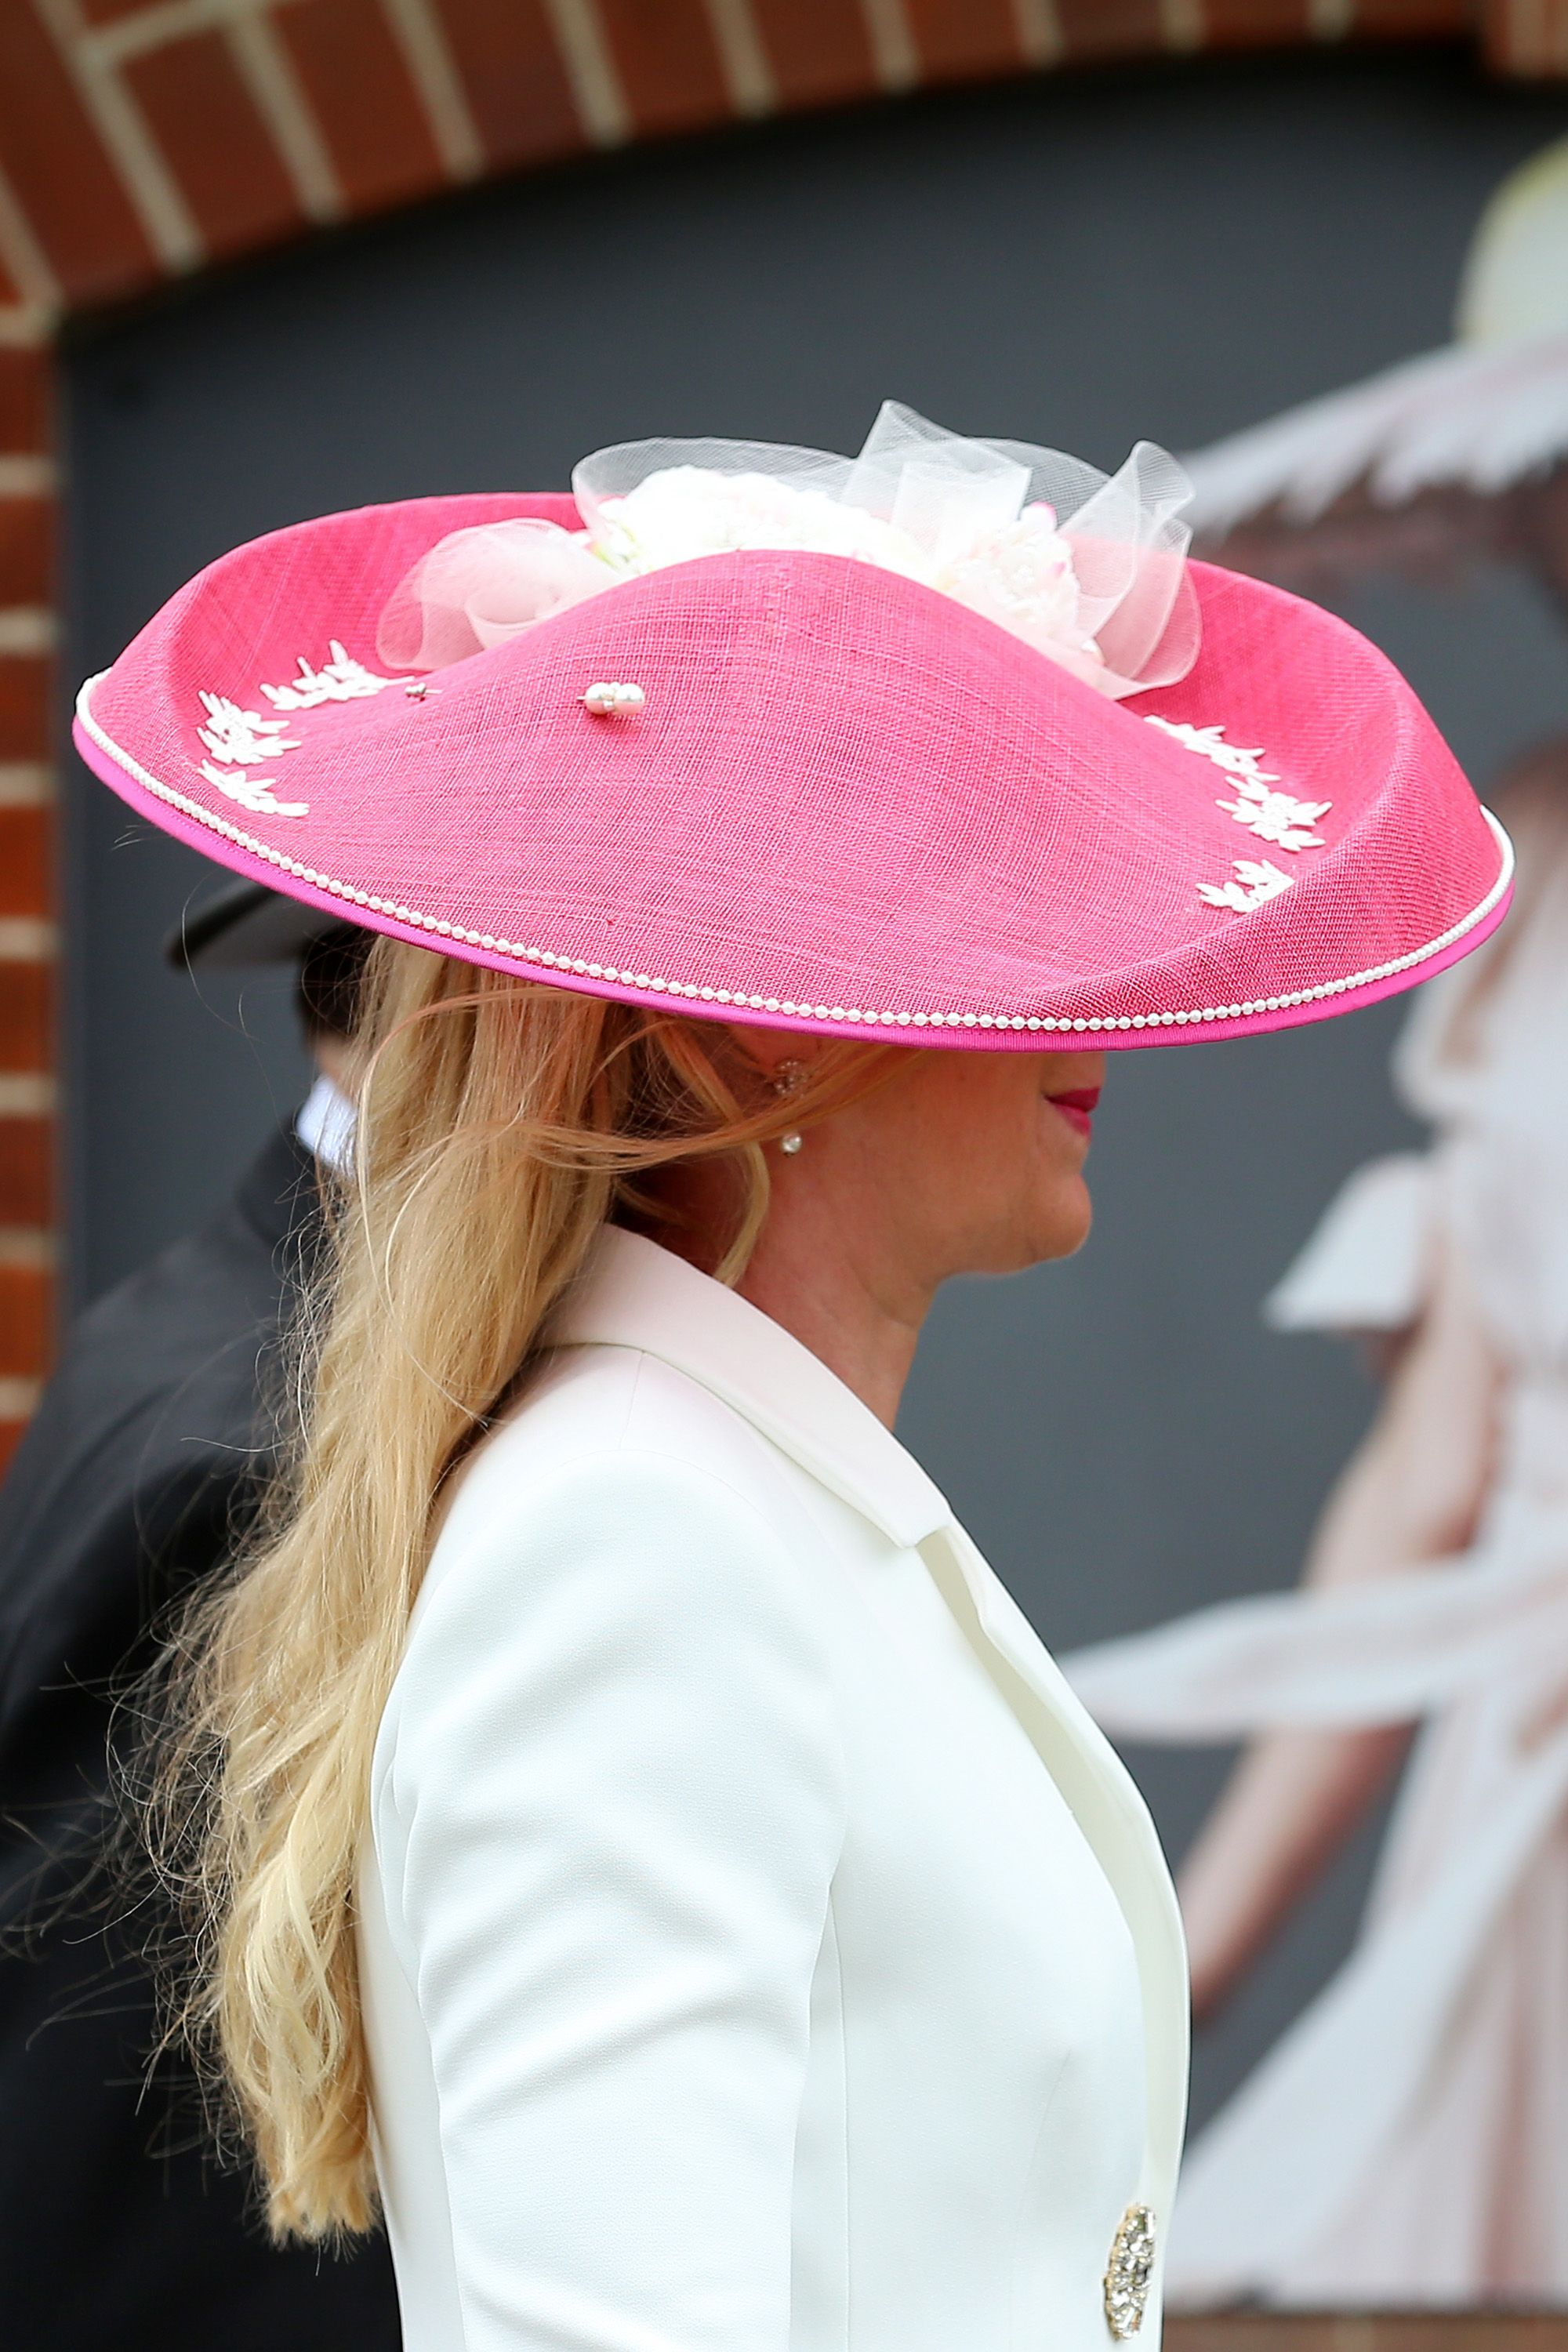 a9fac3a32e414 All the Hats Guests Wore to the Royal Ascot 2018 - Royal Hats